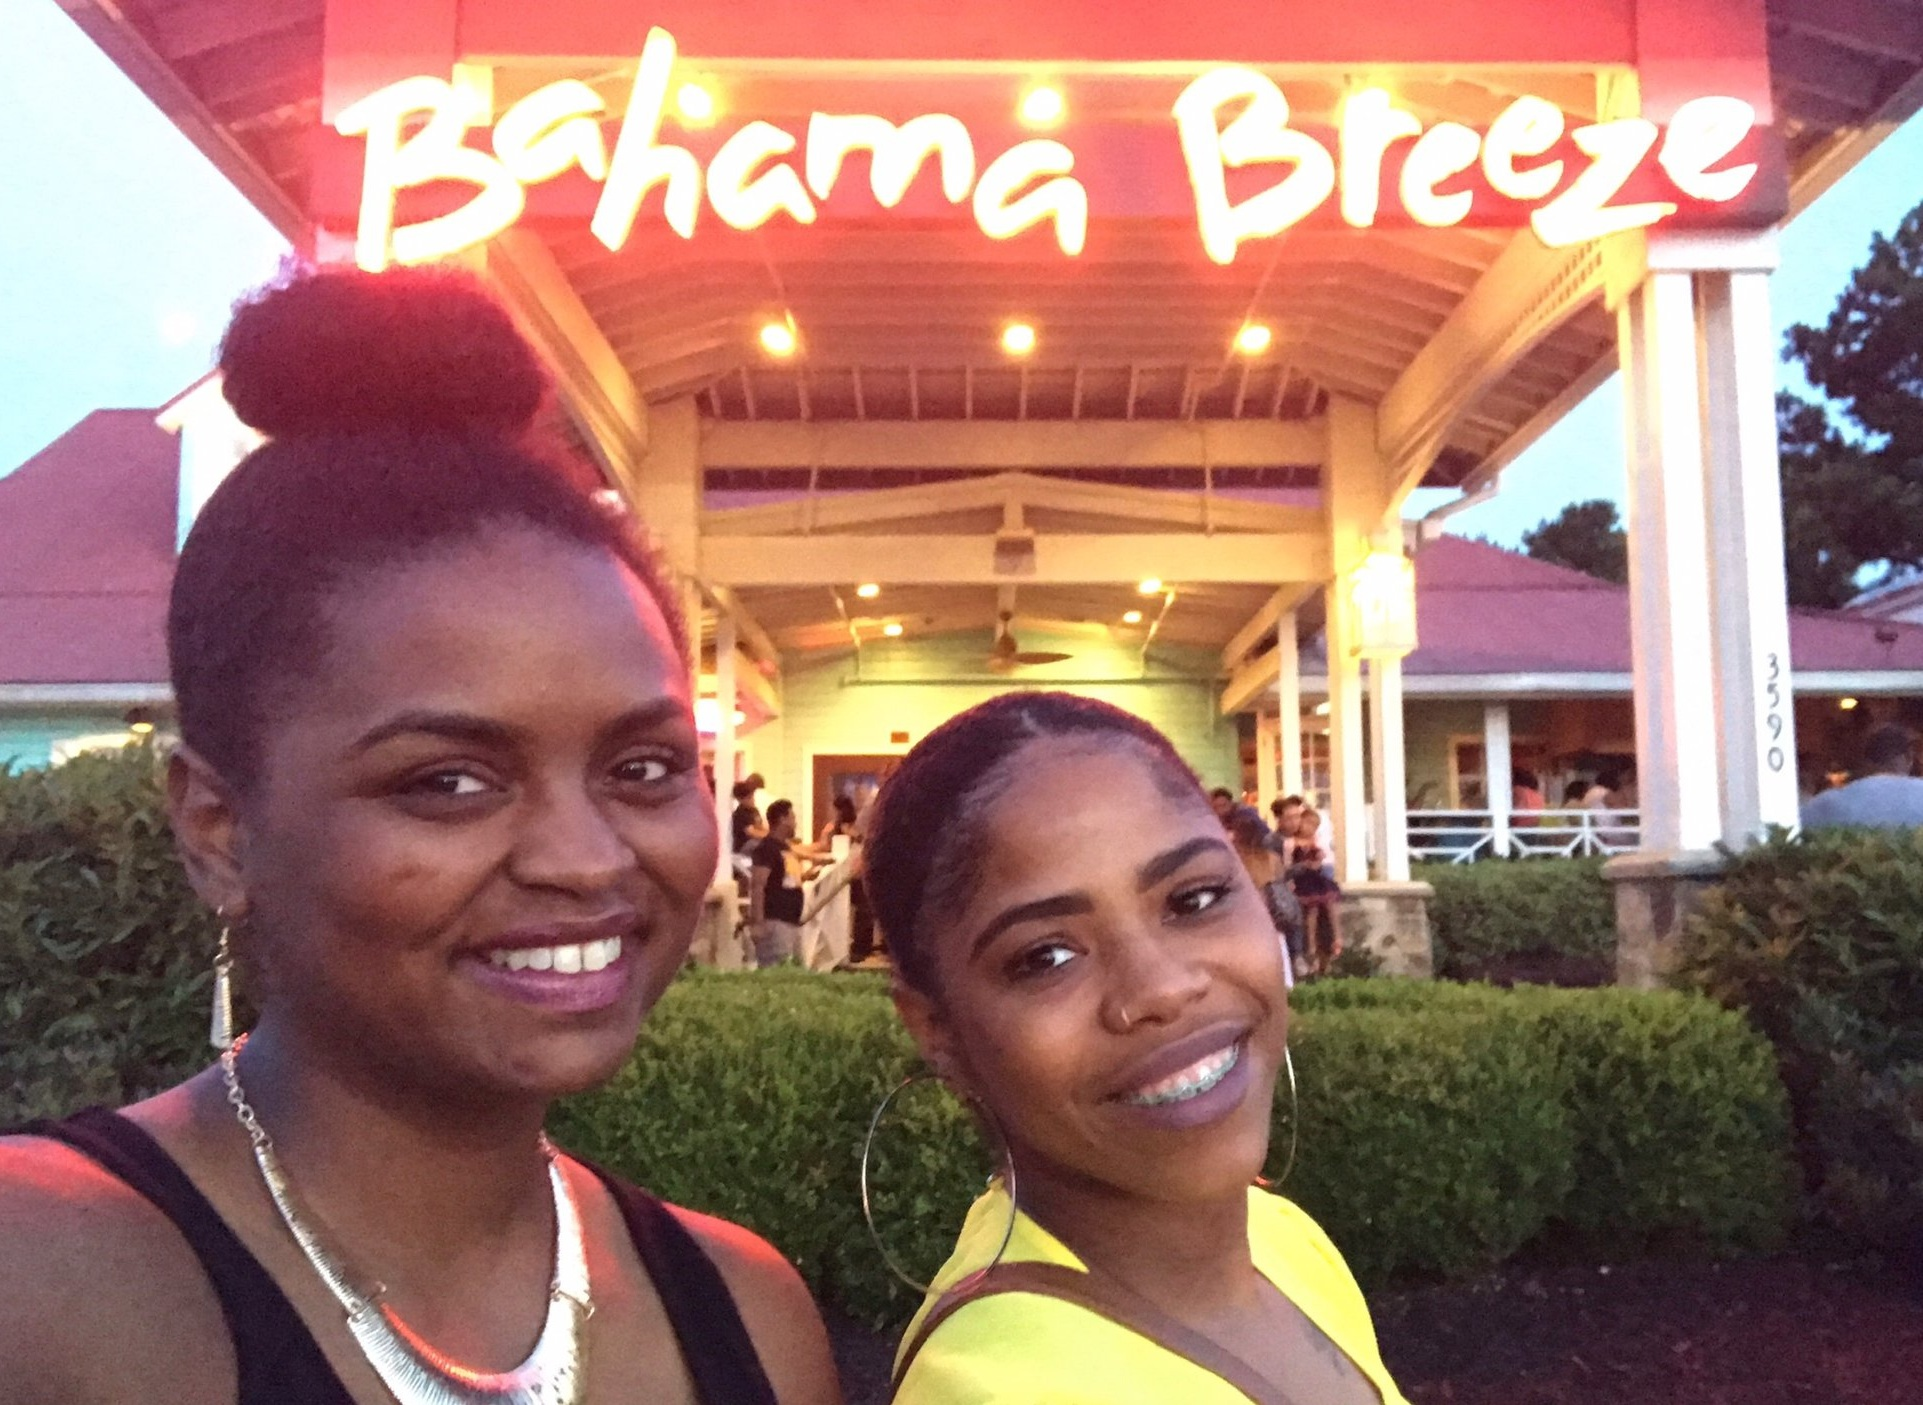 On my last night in Atlanta, we visited Bahama Breeze with friends! #VonneVoyage